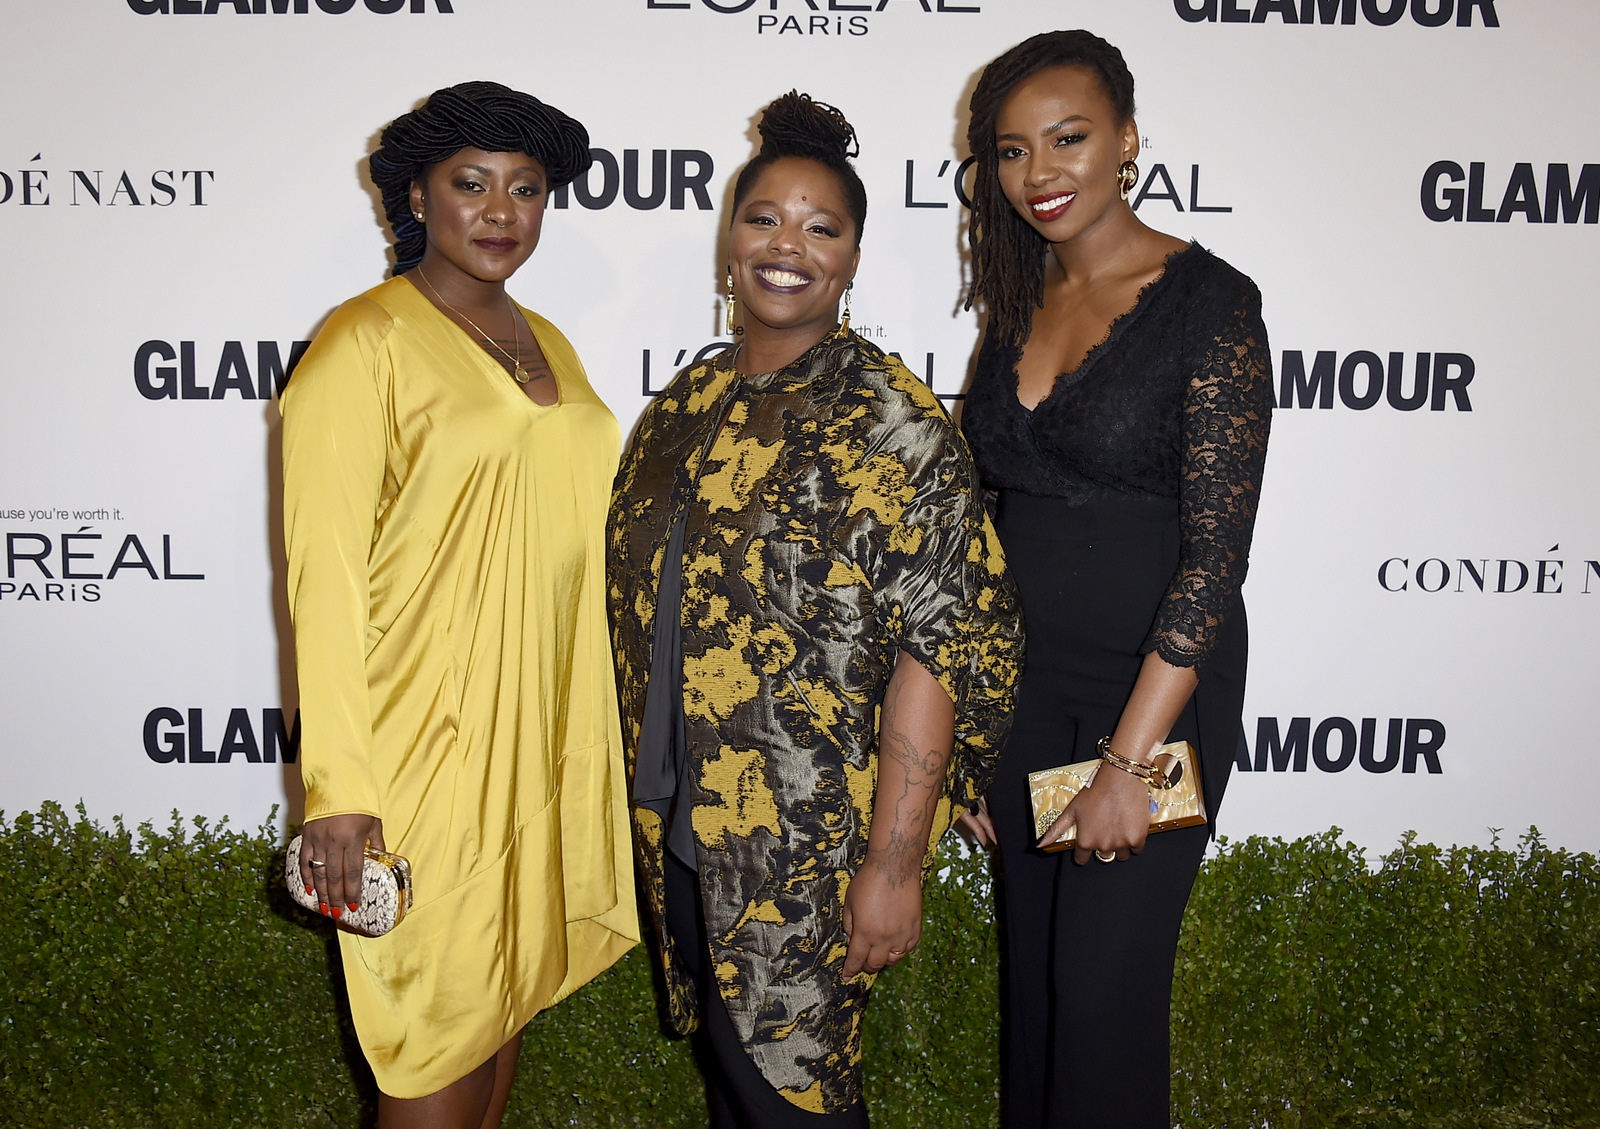 Alicia Garza, from left, Patrisse Cullors and Opal Tometi, co-founders of the Black Lives Matter movement, arrive at the Glamour Women of the Year Awards at NeueHouse Hollywood on Monday, Nov. 14, 2016, in Los Angeles. (Photo: Jordan Strauss/Invision/AP)